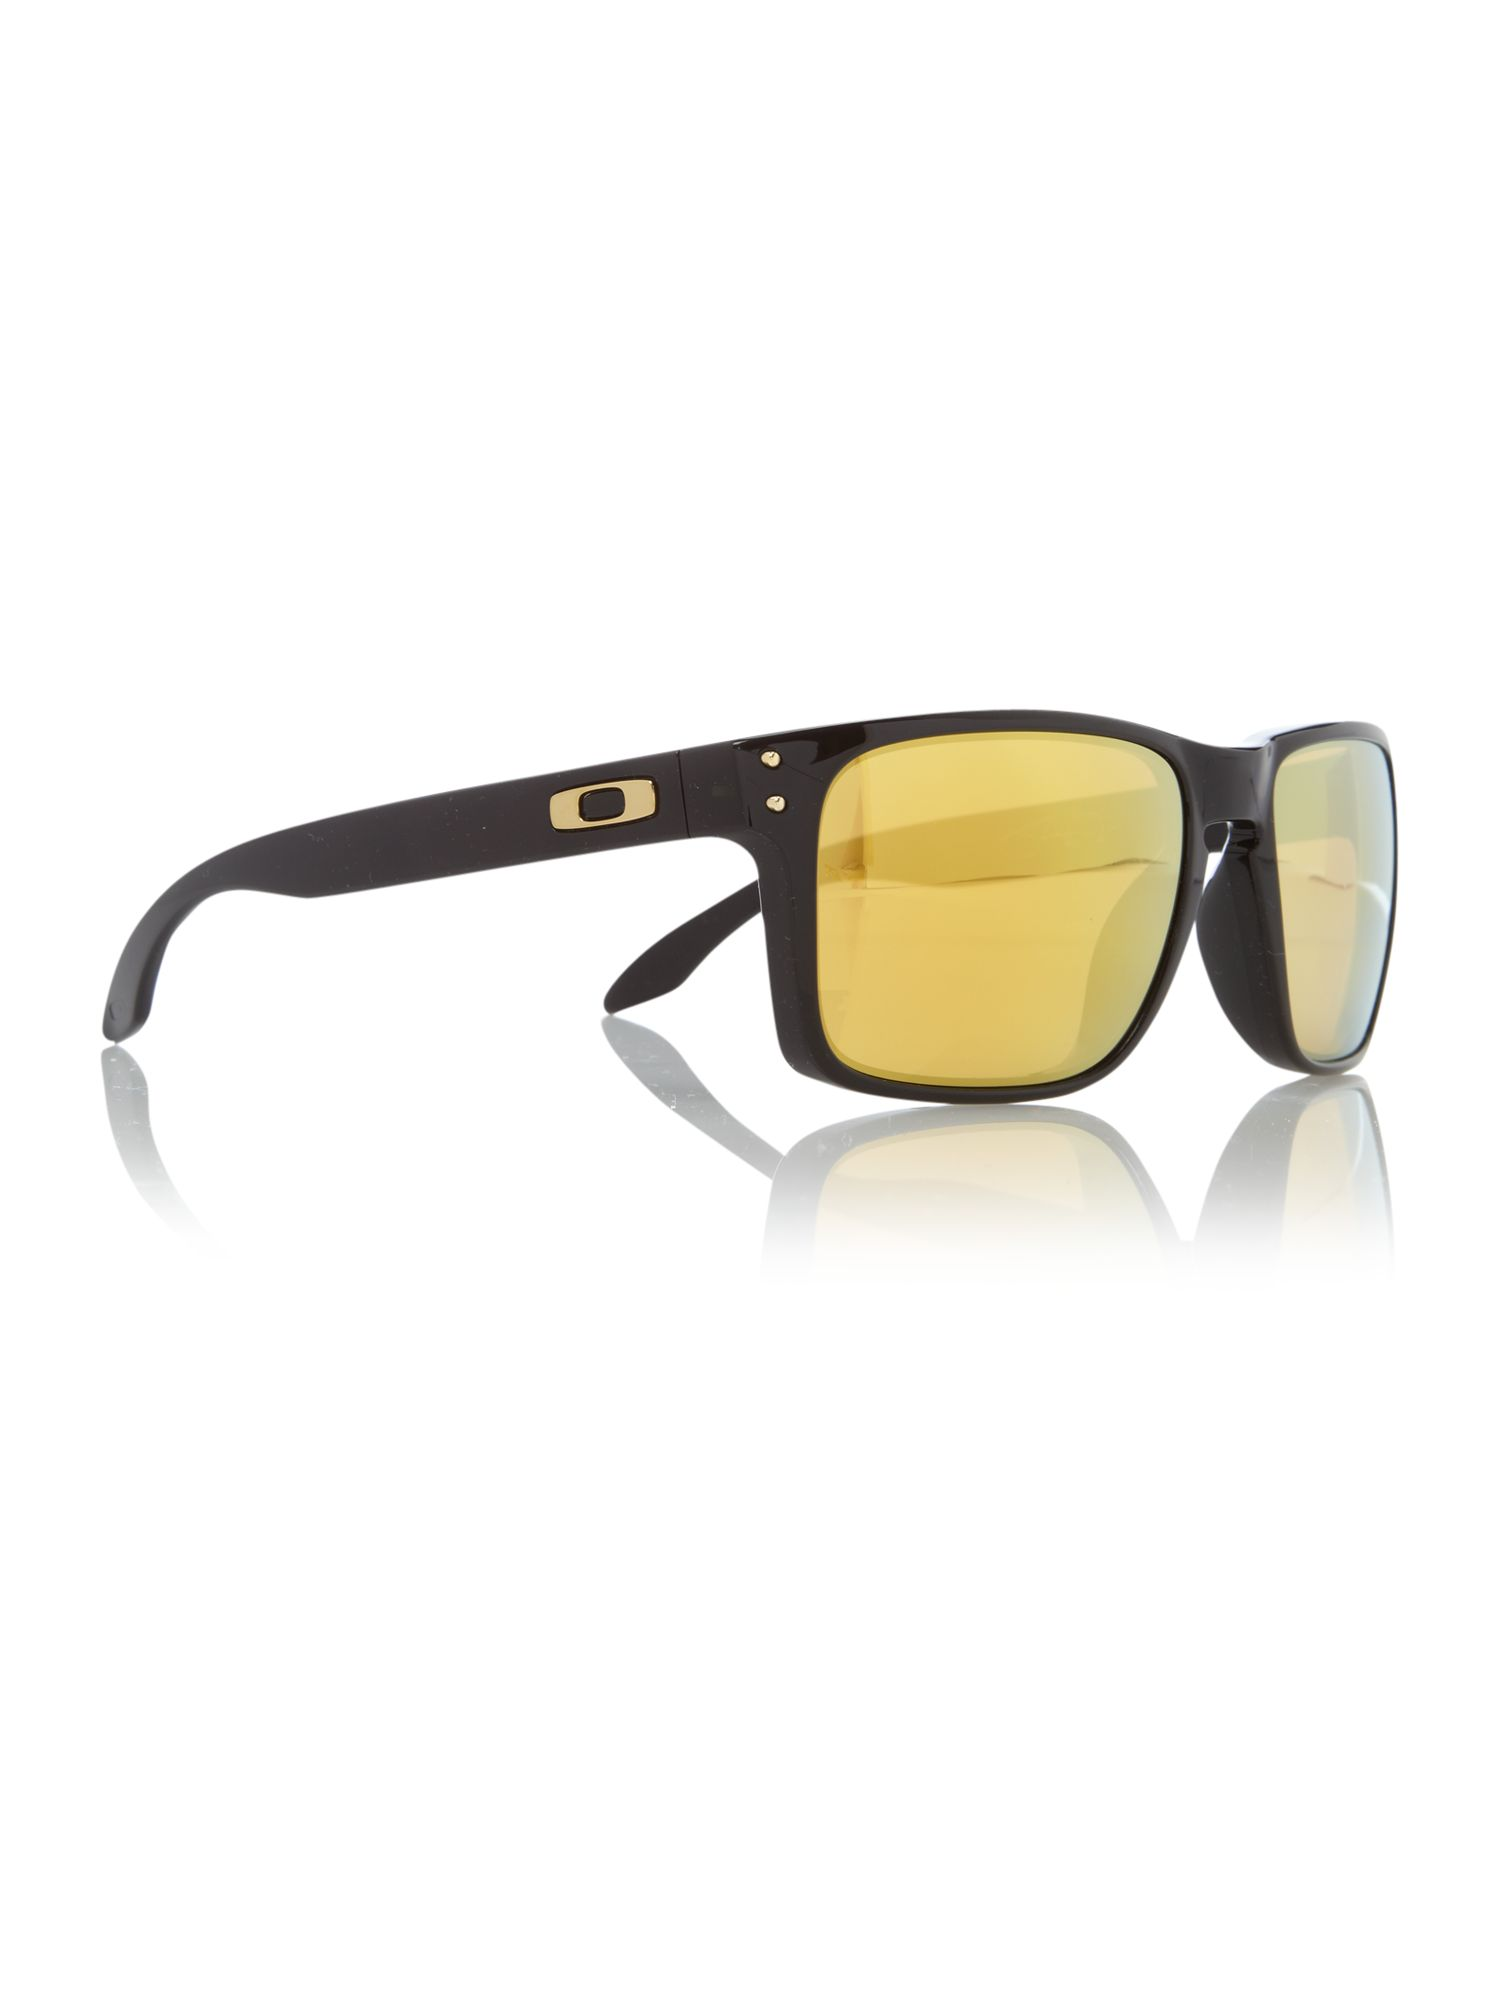 Mens OO9102 Holbrook Sunglasses